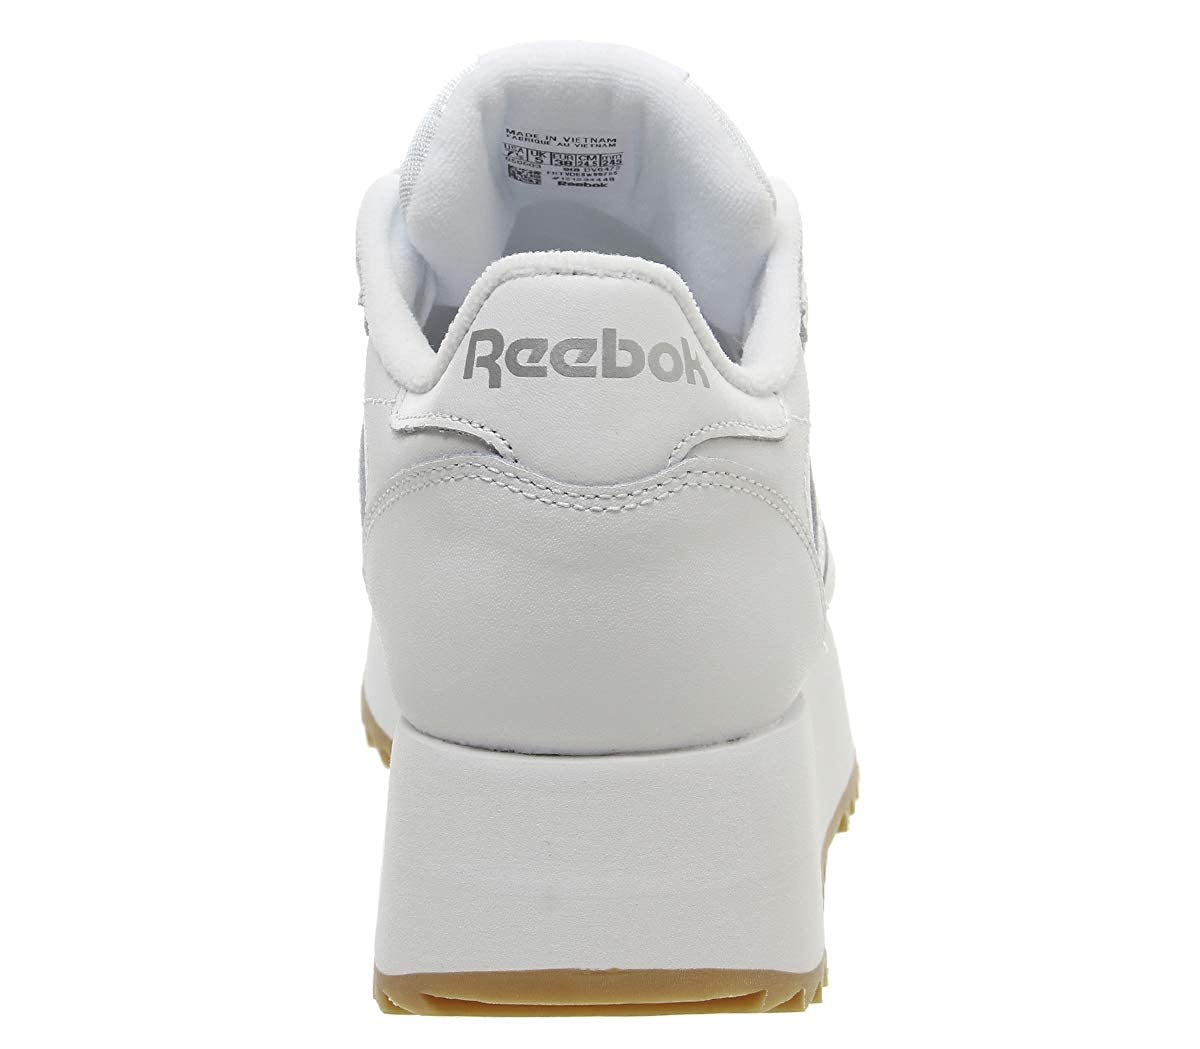 bfb88064856 Reebok Classic Leather Double Trainers White  Amazon.co.uk  Shoes   Bags